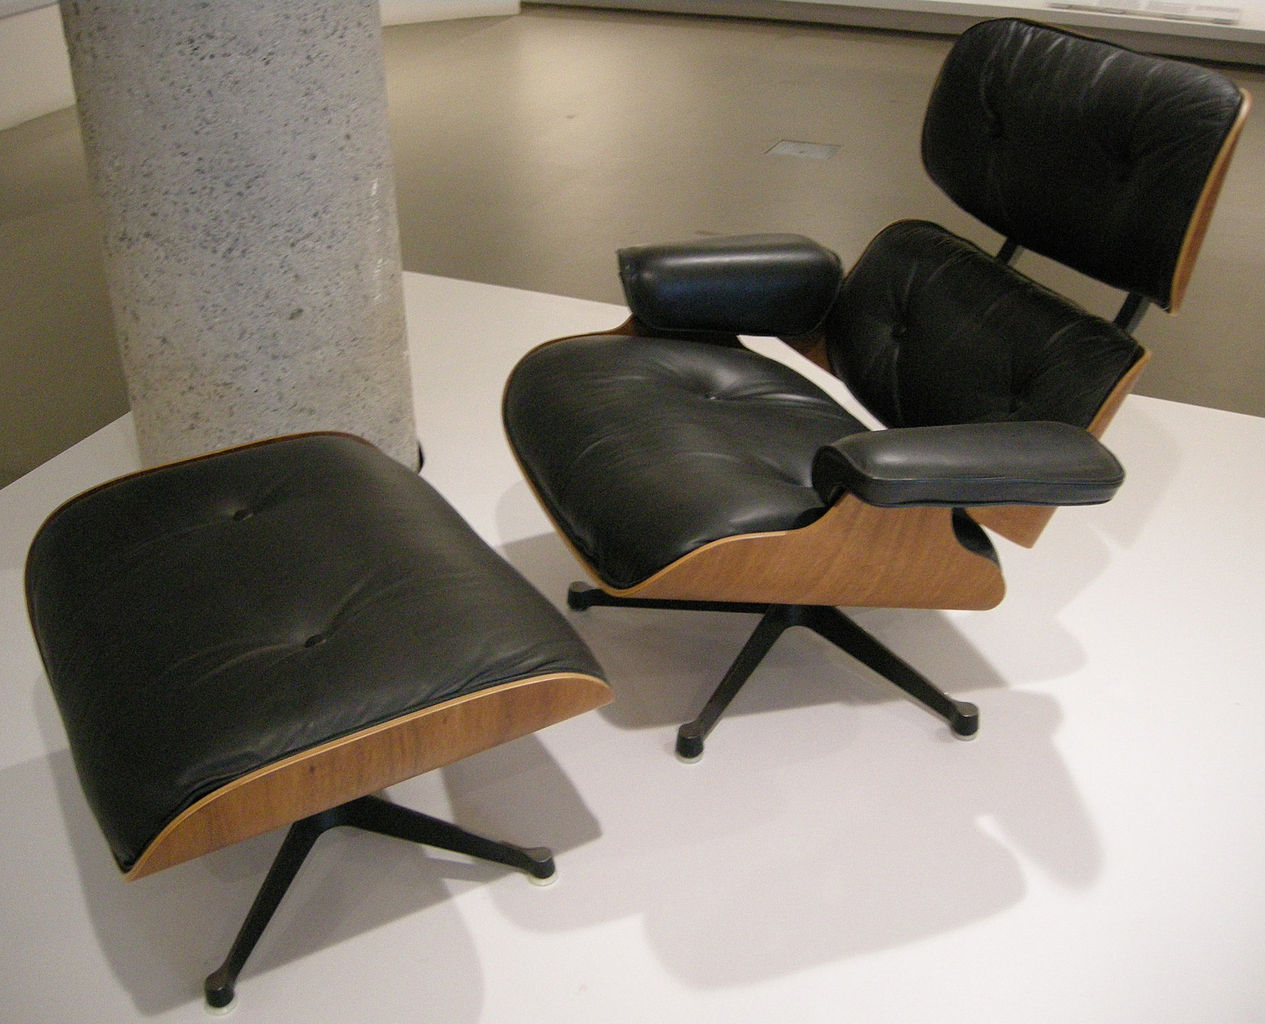 Eames: lounge_chair_(Bild: Sailko, CC_BY_SA 3.0)